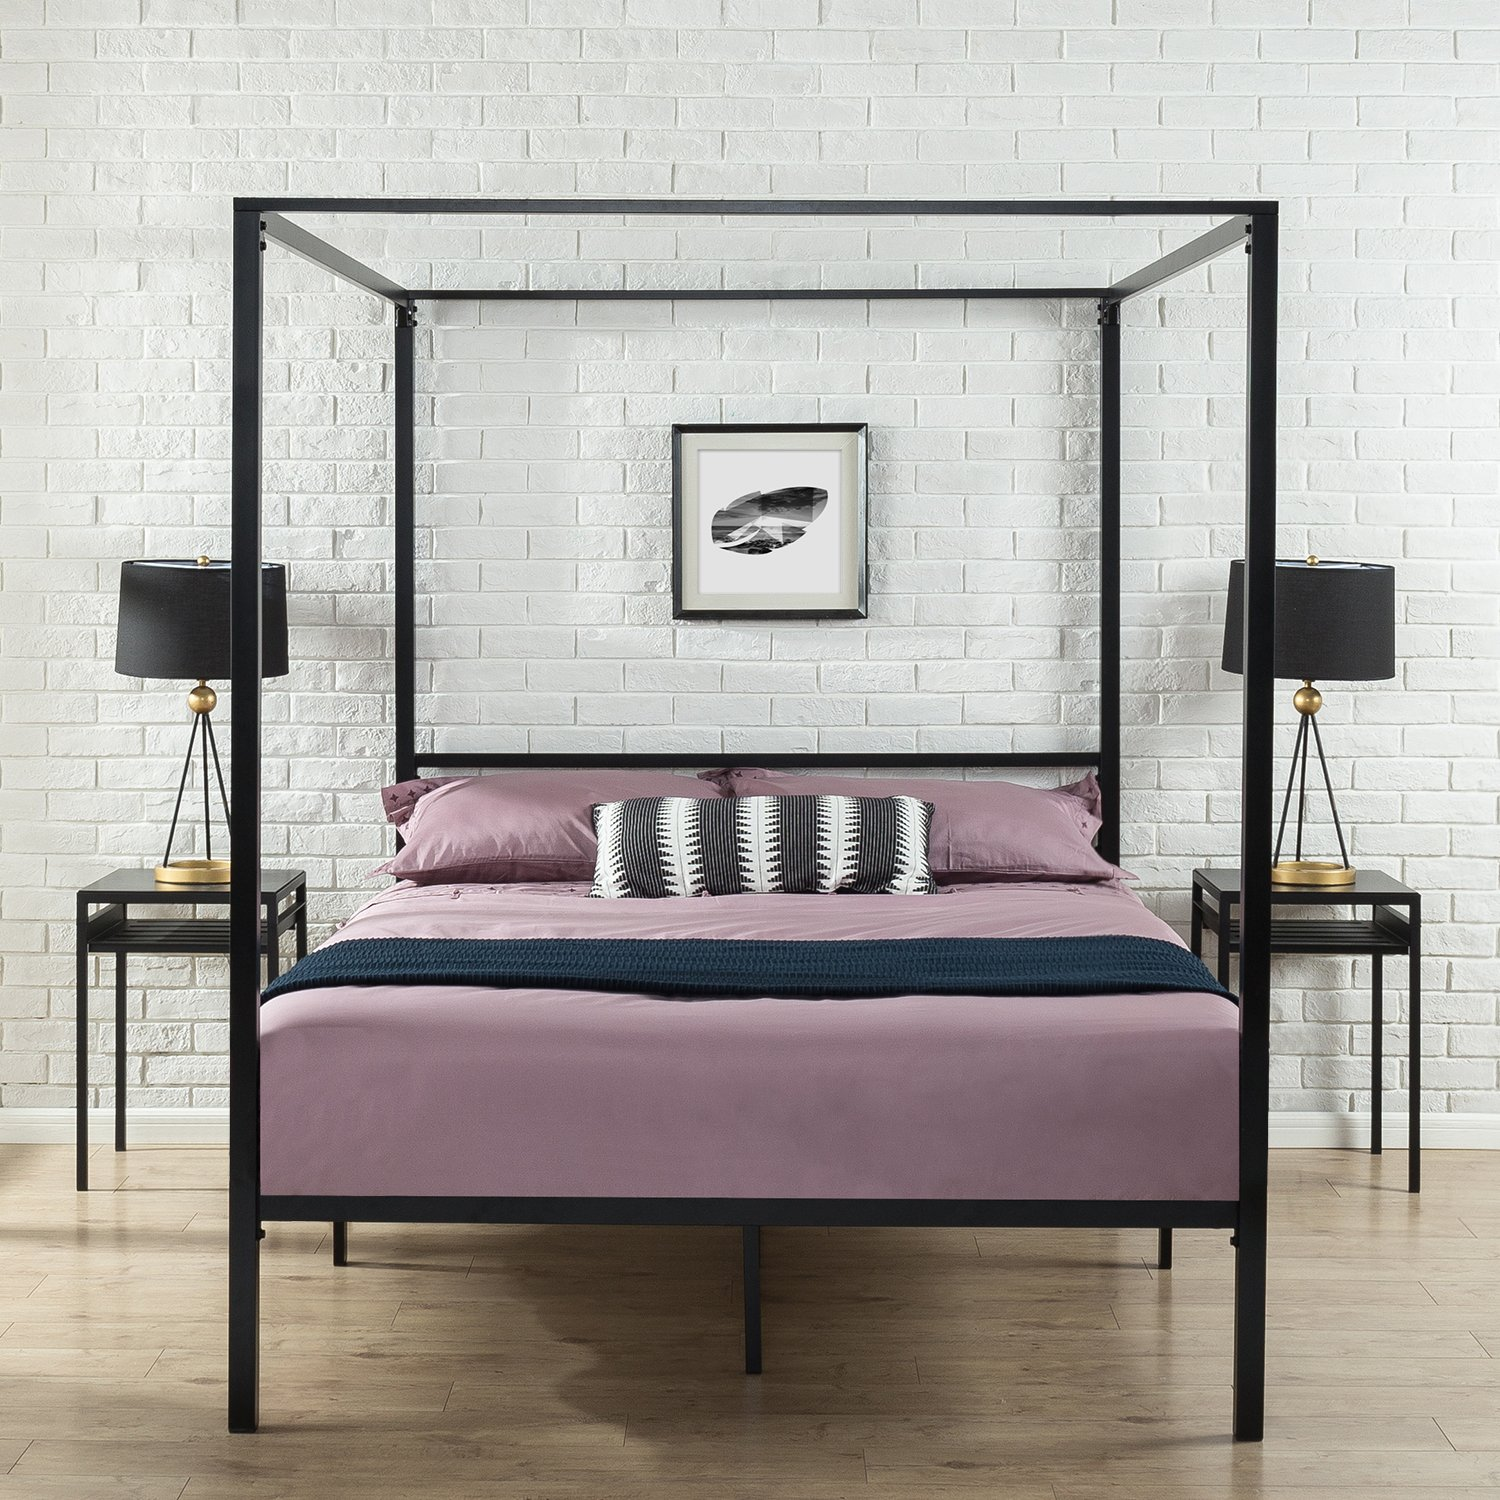 investing in custom beds frames